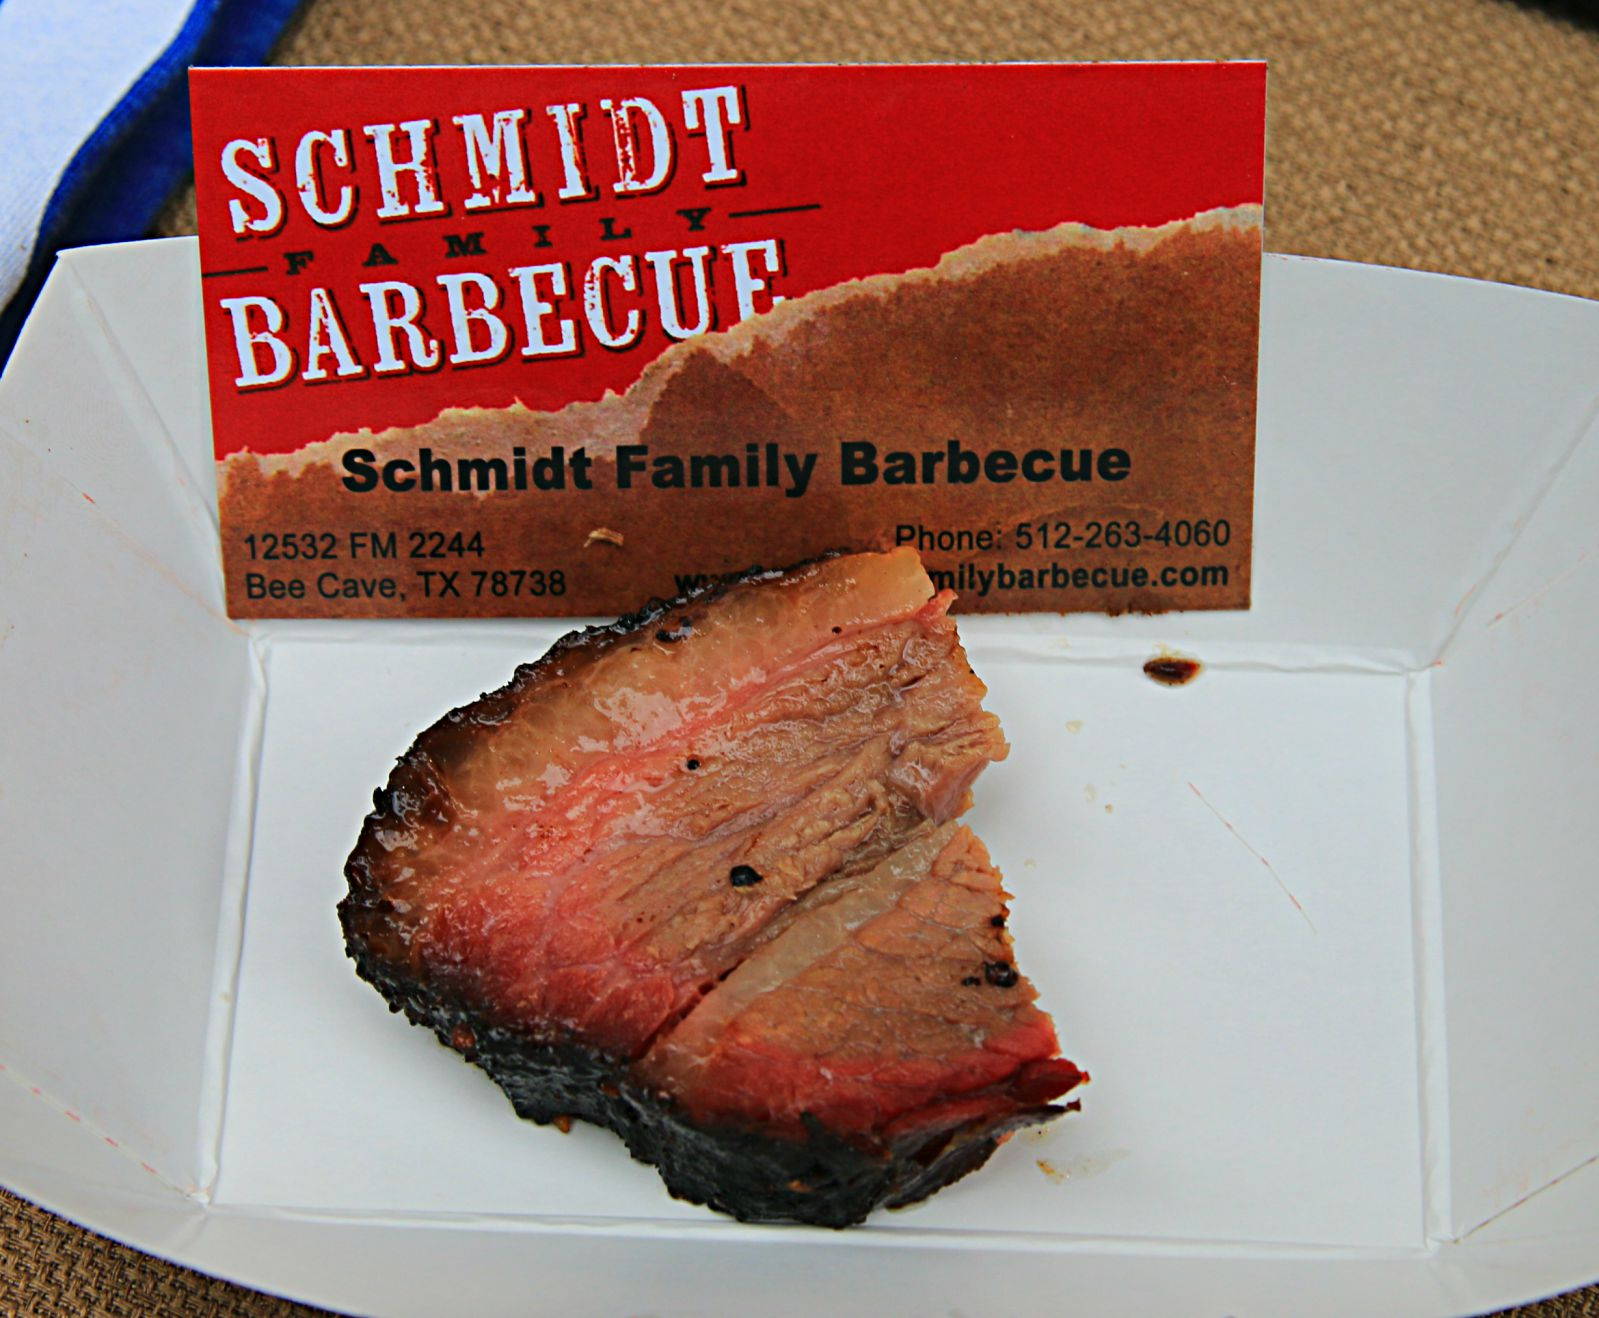 Schmidt Family Barbecue brisket (with a bite already taken) at Smoked Dallas 2016